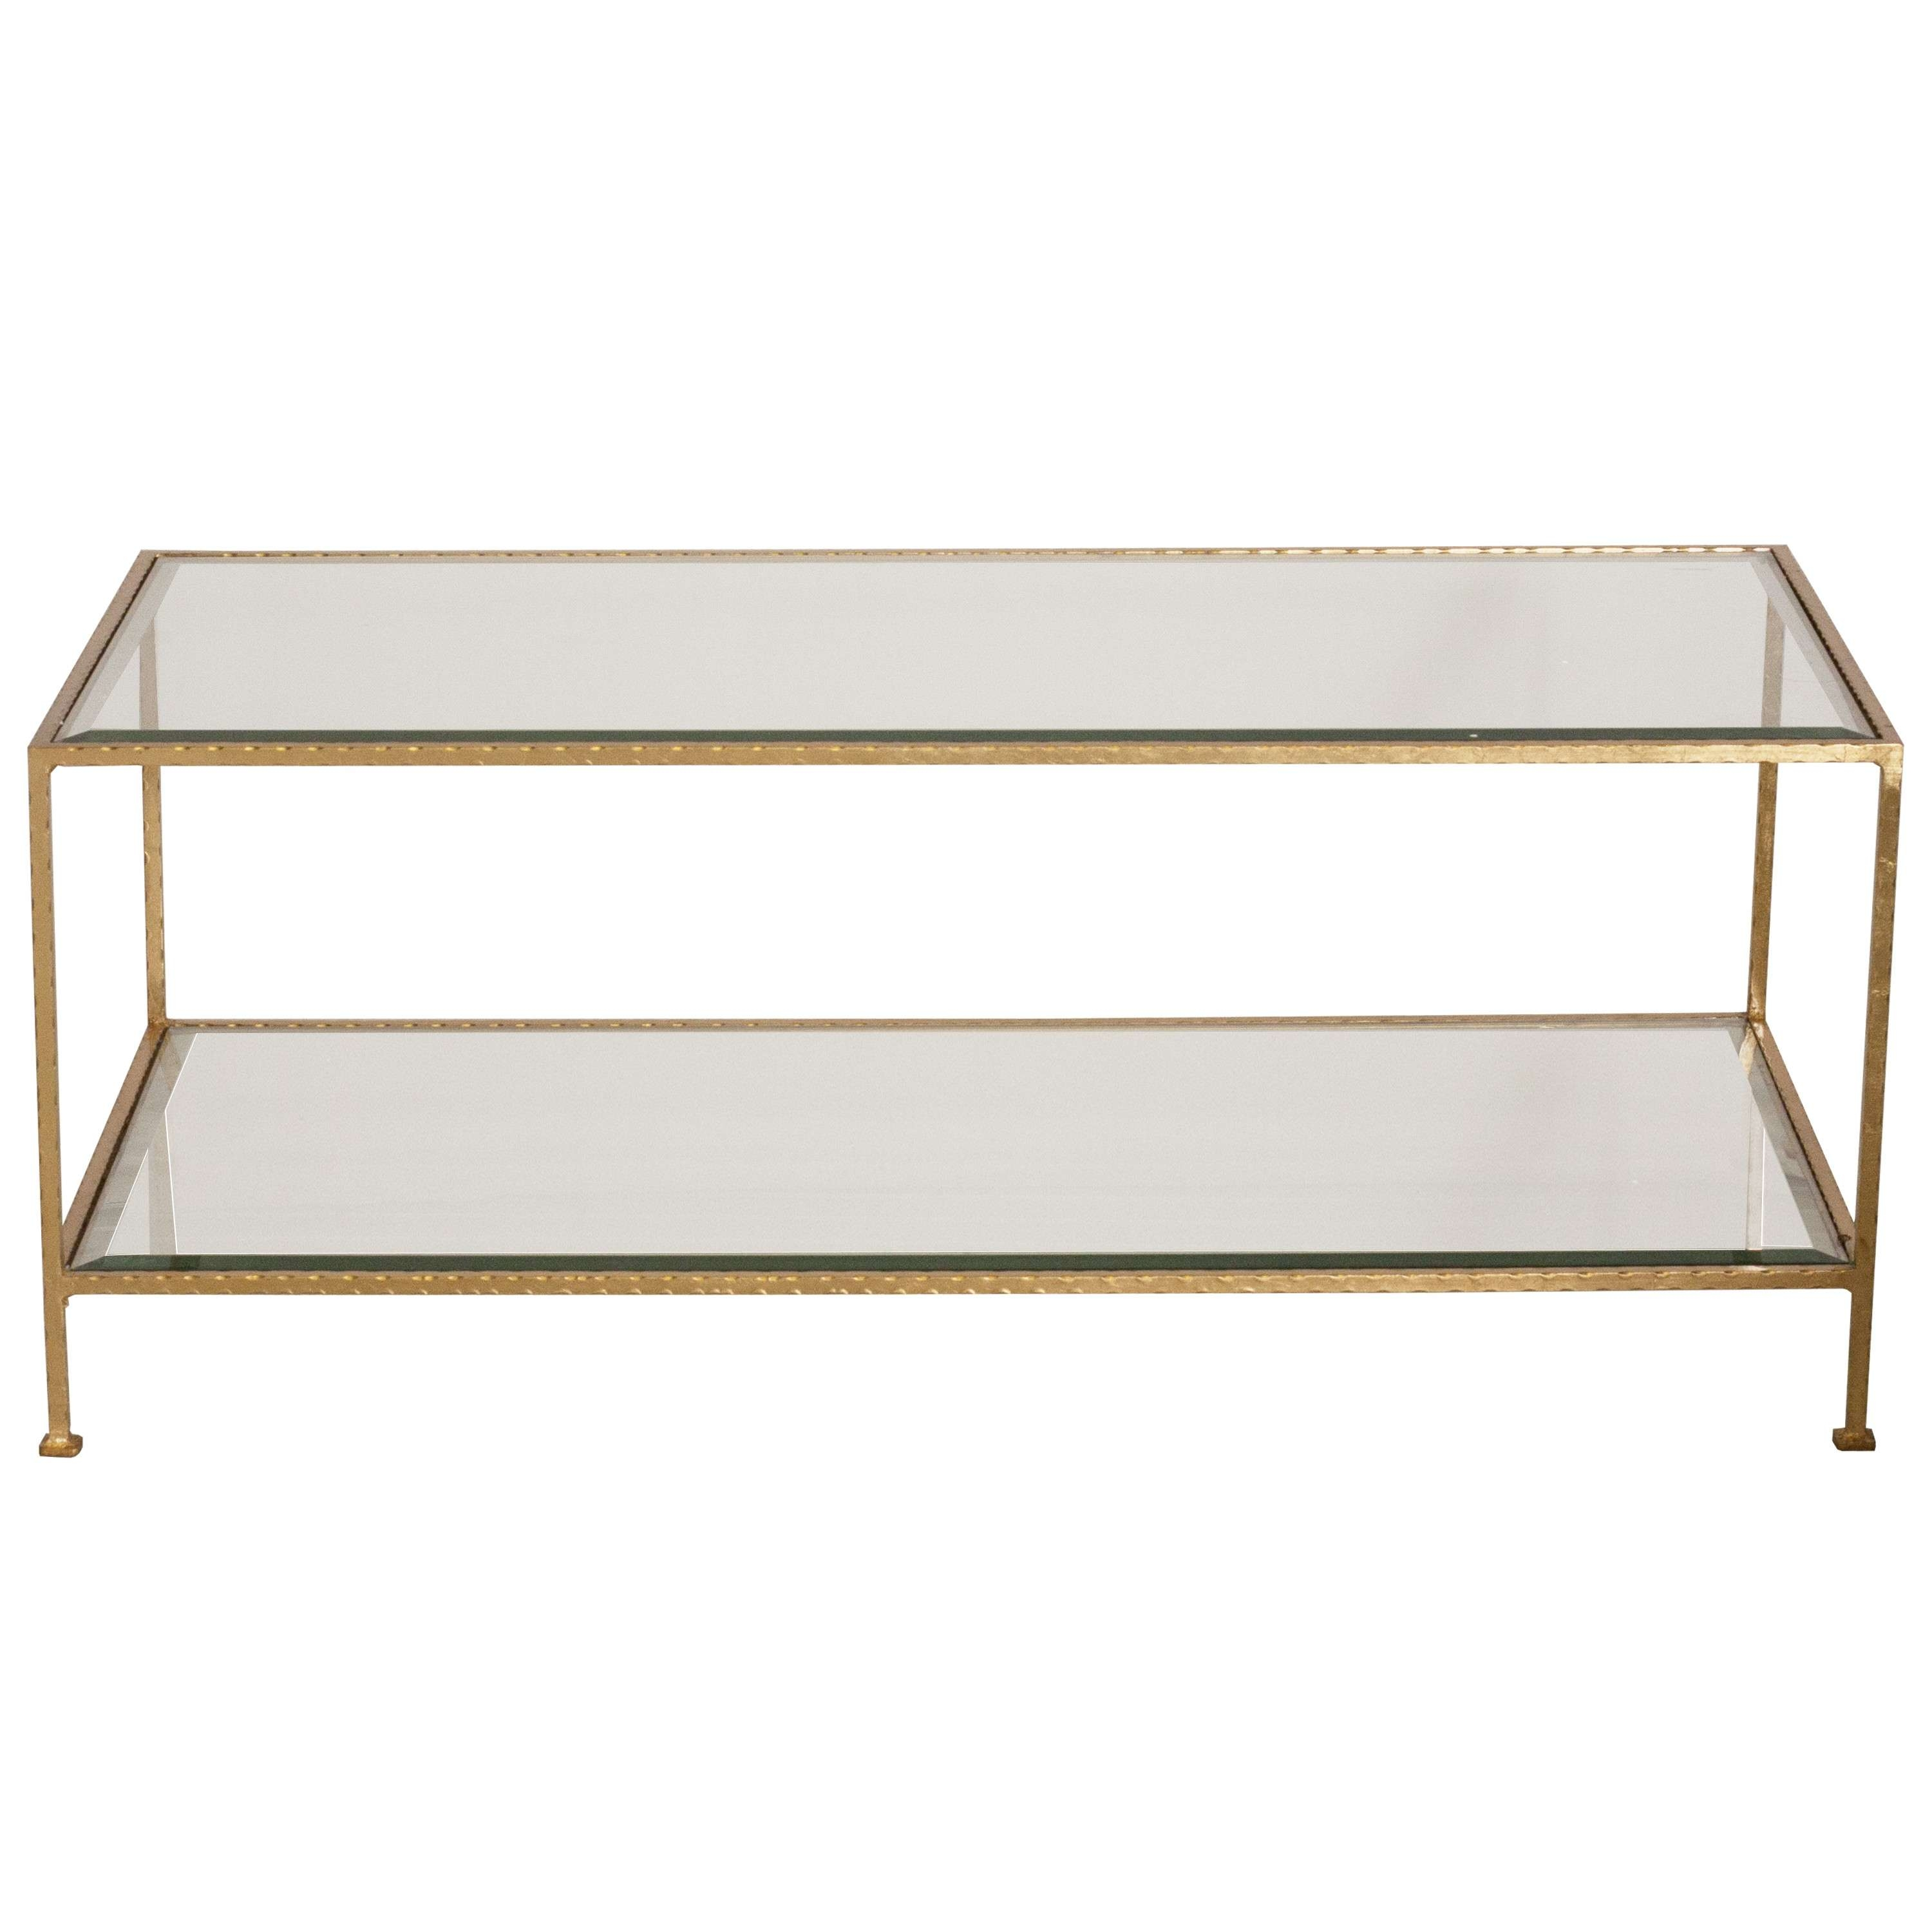 Coffee Tables : Elegant Clear And Golden Rectangle Traditional Throughout Most Current Steel And Glass Coffee Tables (View 7 of 20)